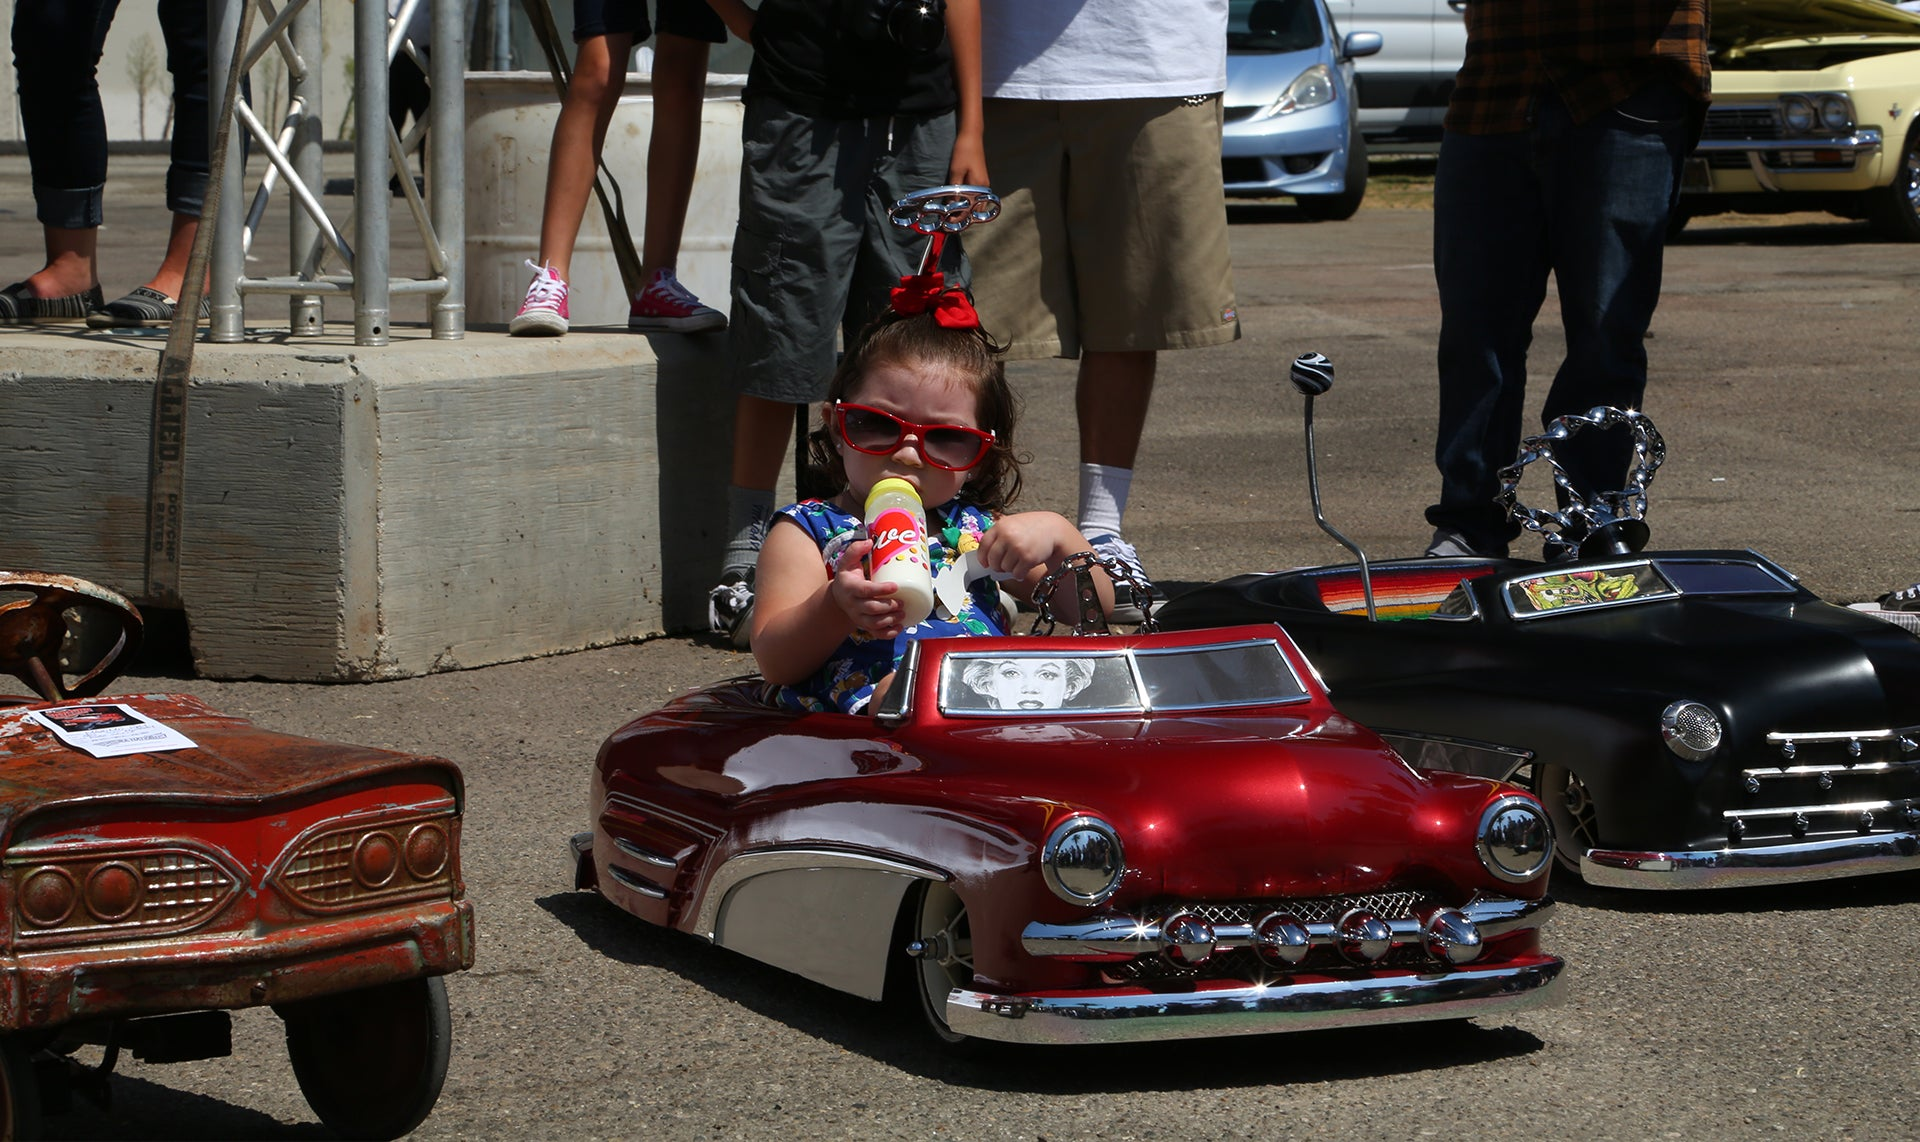 A lil lady enjoying the carshow in her toy car